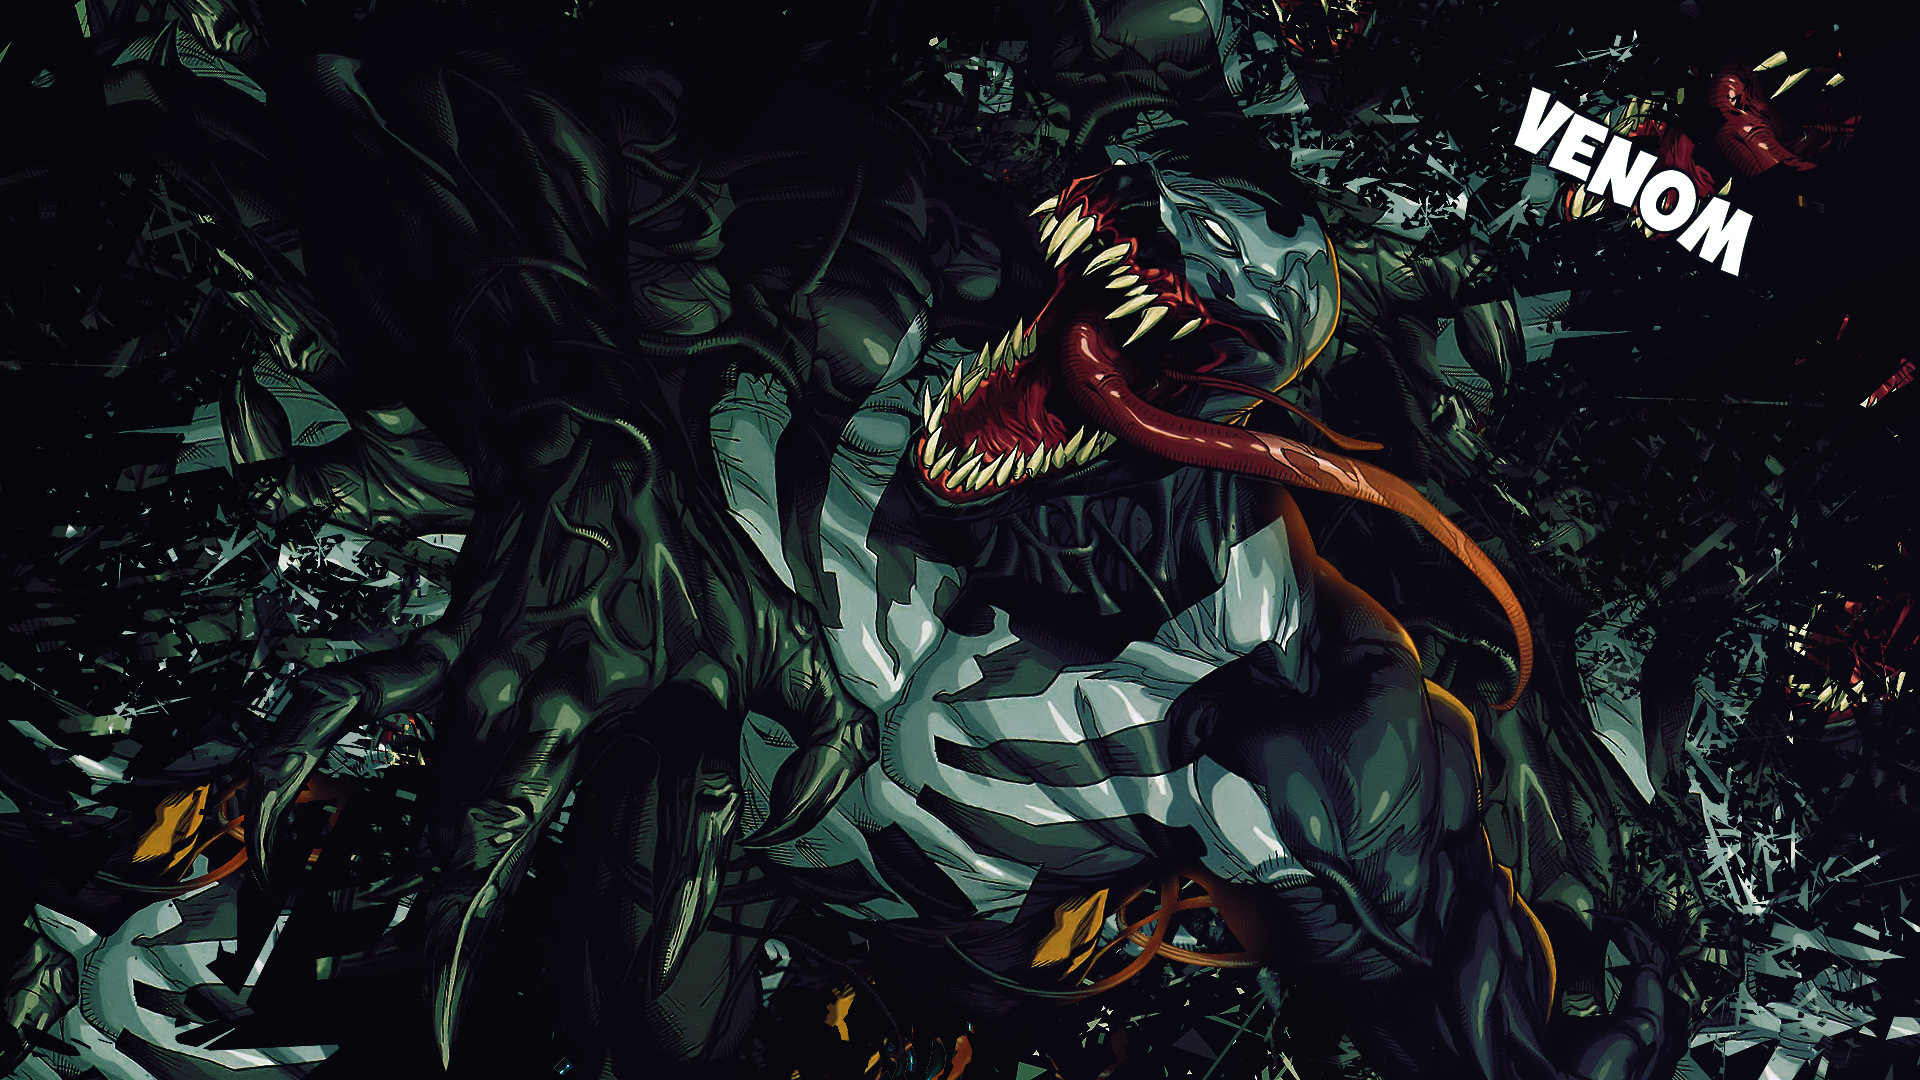 Marvel Venom Wallpaper Hd Wallpapersafari